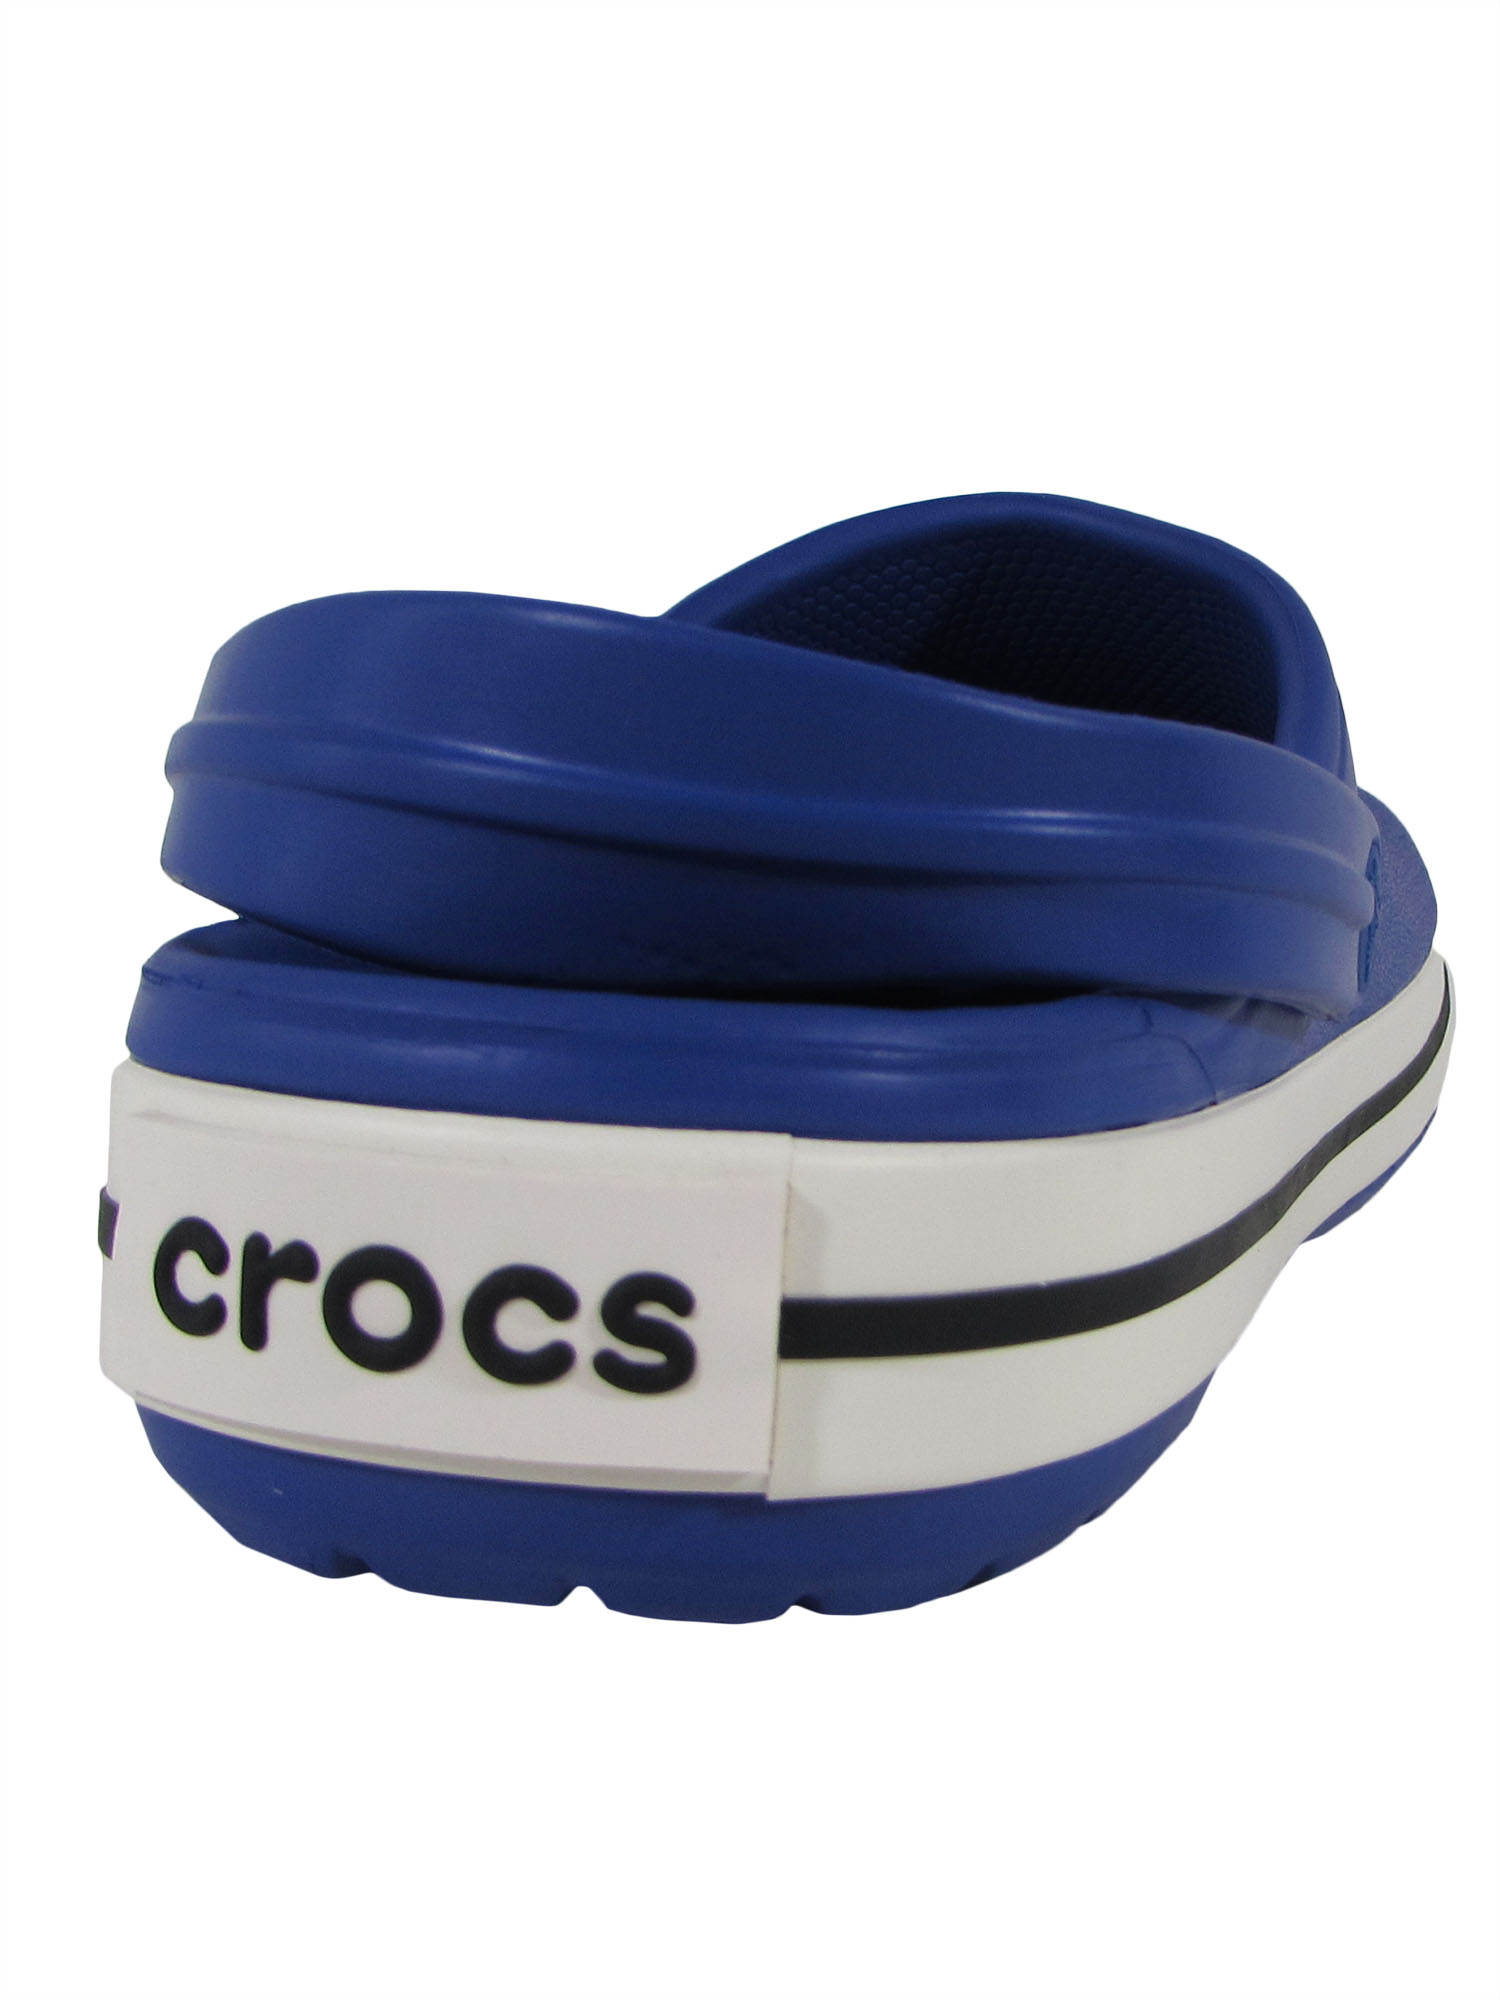 0804dc39e Crocs Crocband Clog Cerulean Blue   Oyster Clogs - 10m 8m for sale ...